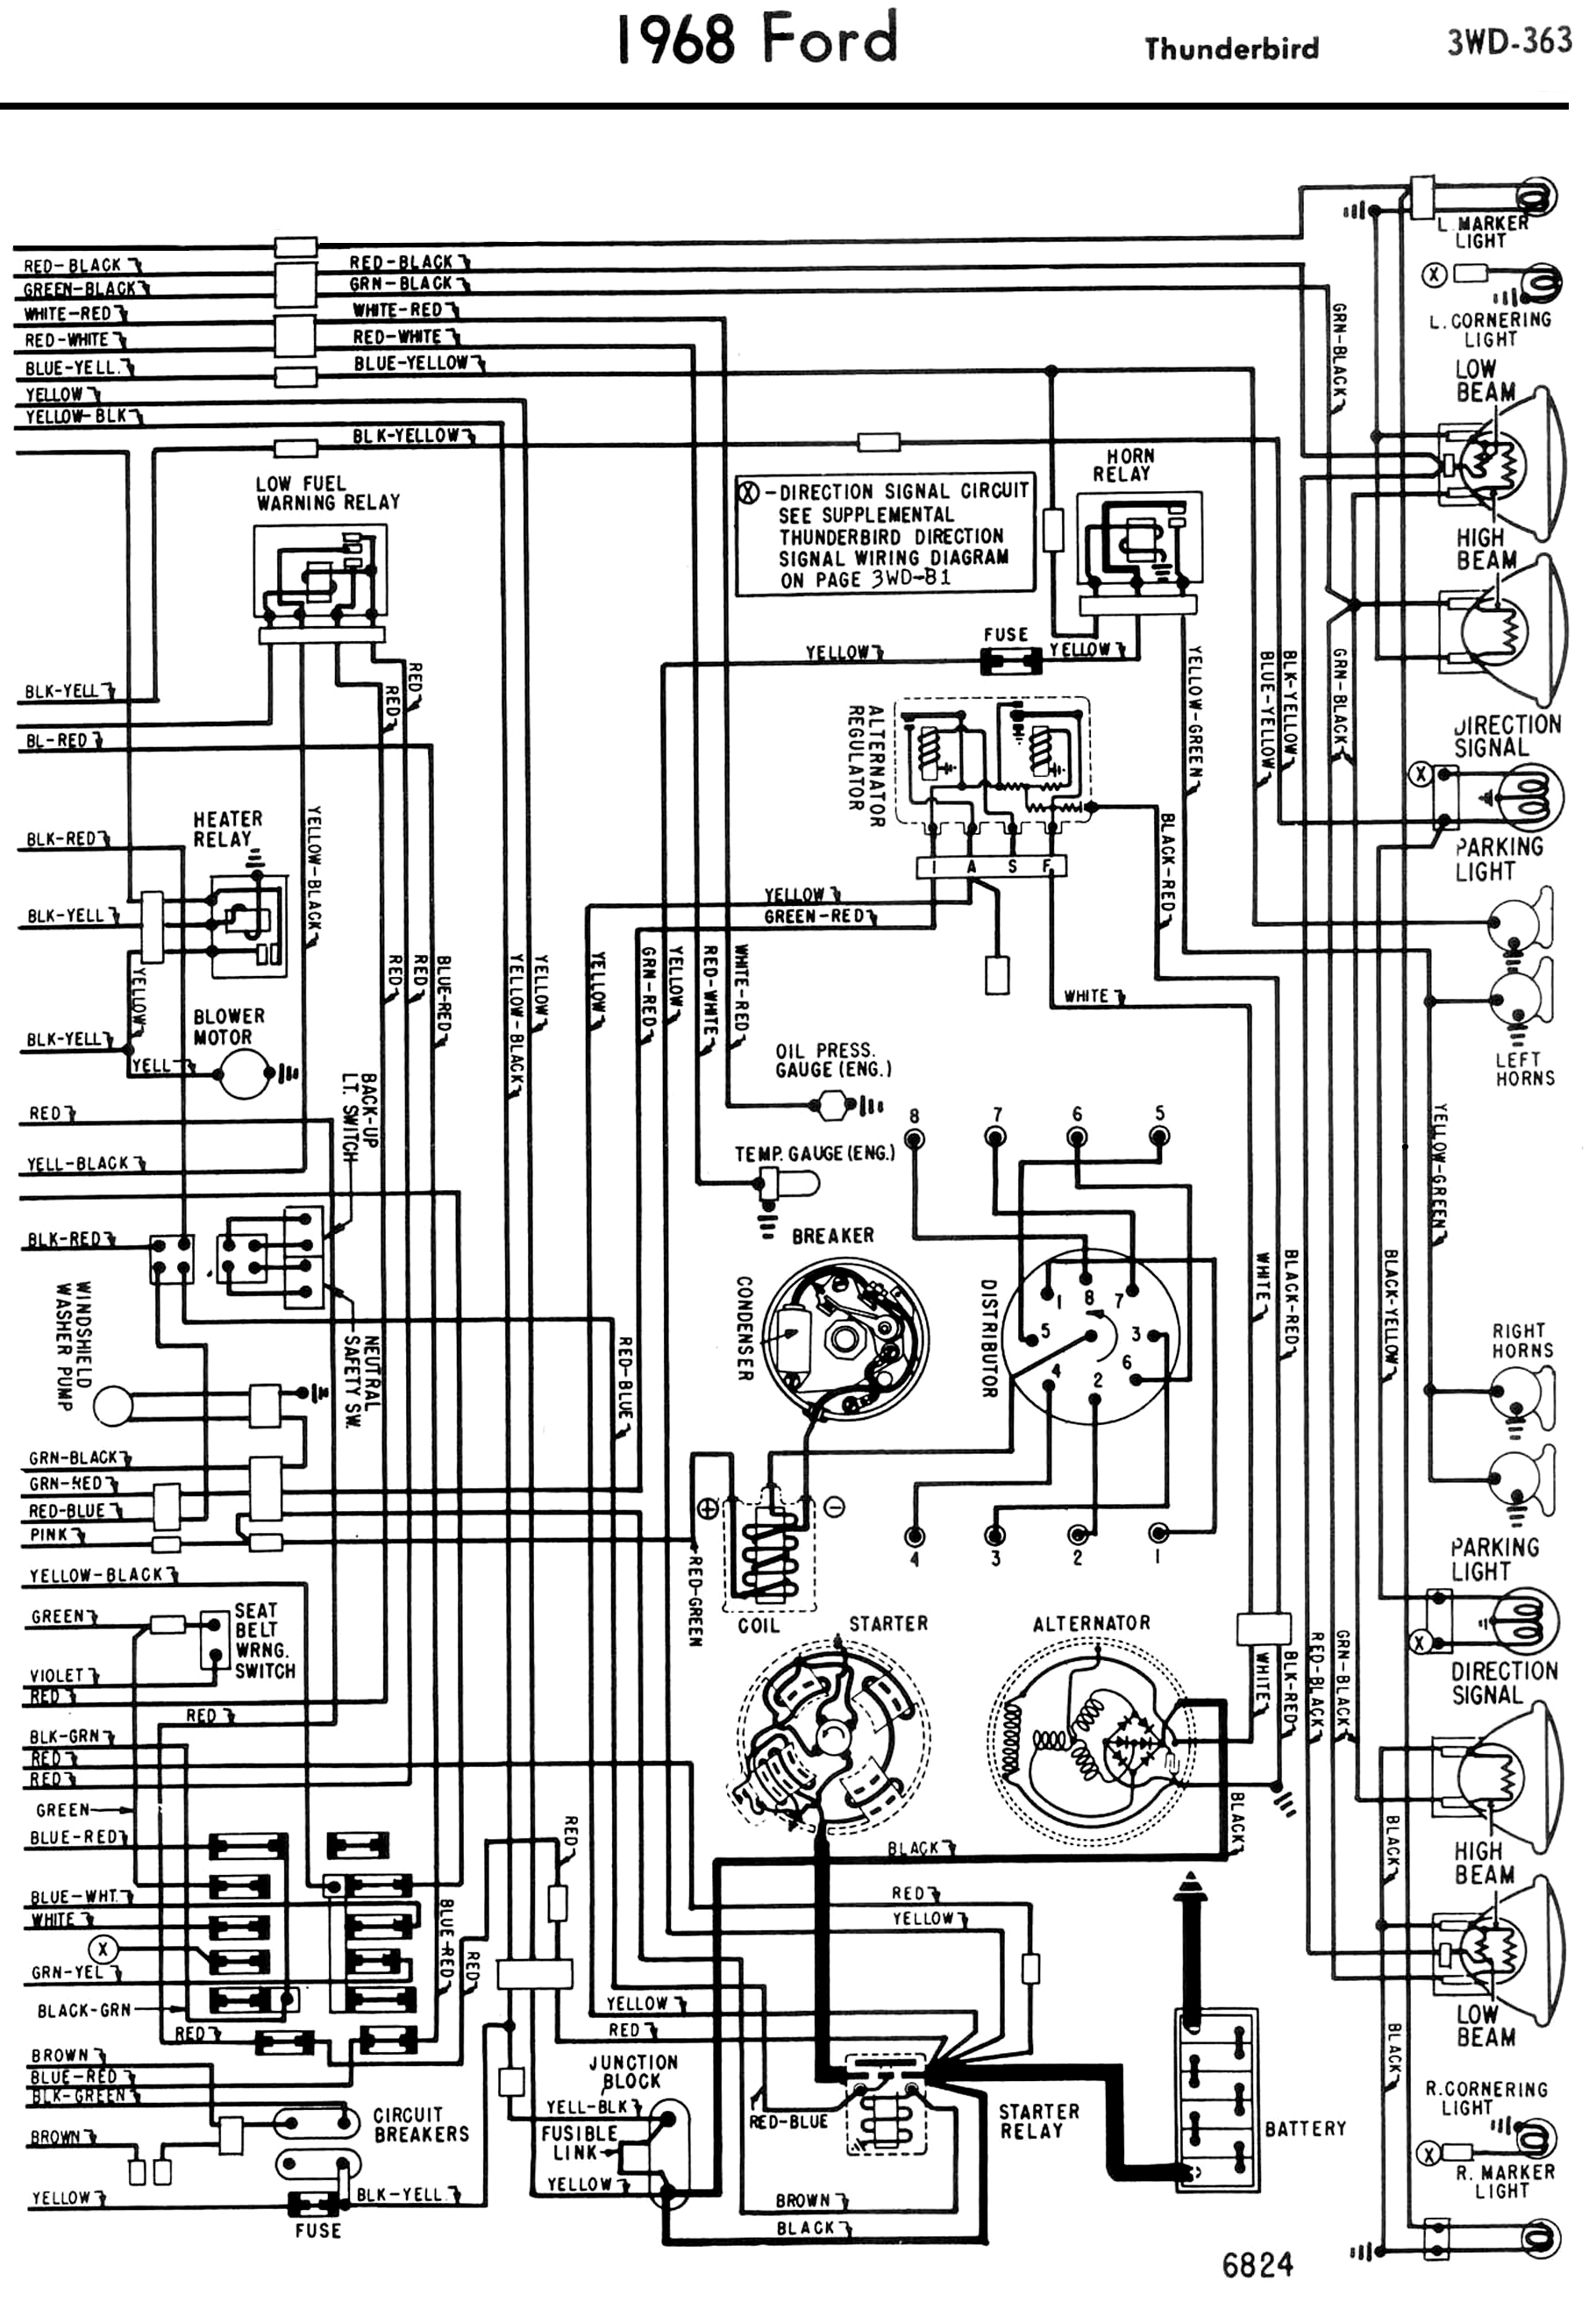 1965 Thunderbird Alternator Wiring Download Diagrams 1969 Ford Lincoln Free Get Image About Impala Diagram 1980